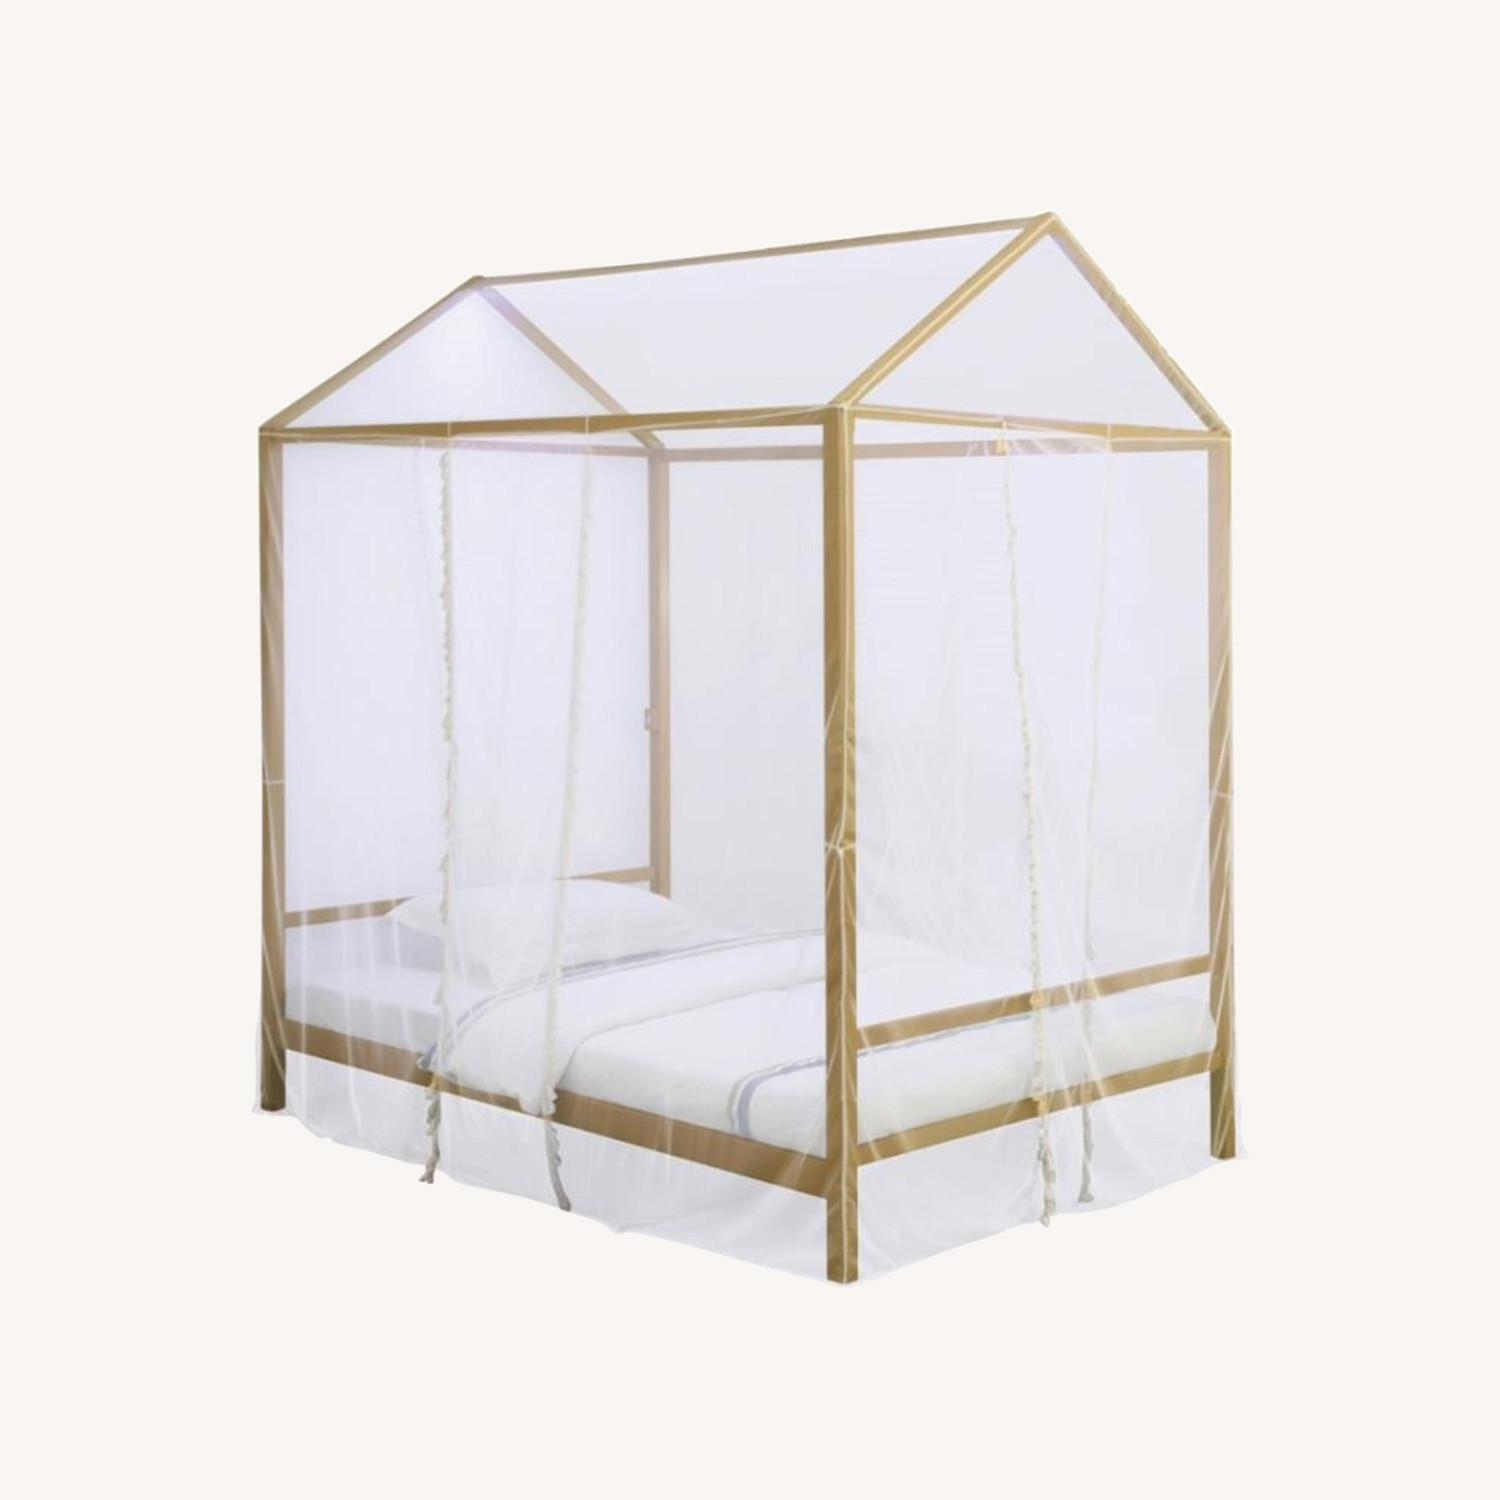 LED Full Tent Bed In Matte Gold W/ White Fabric - image-4